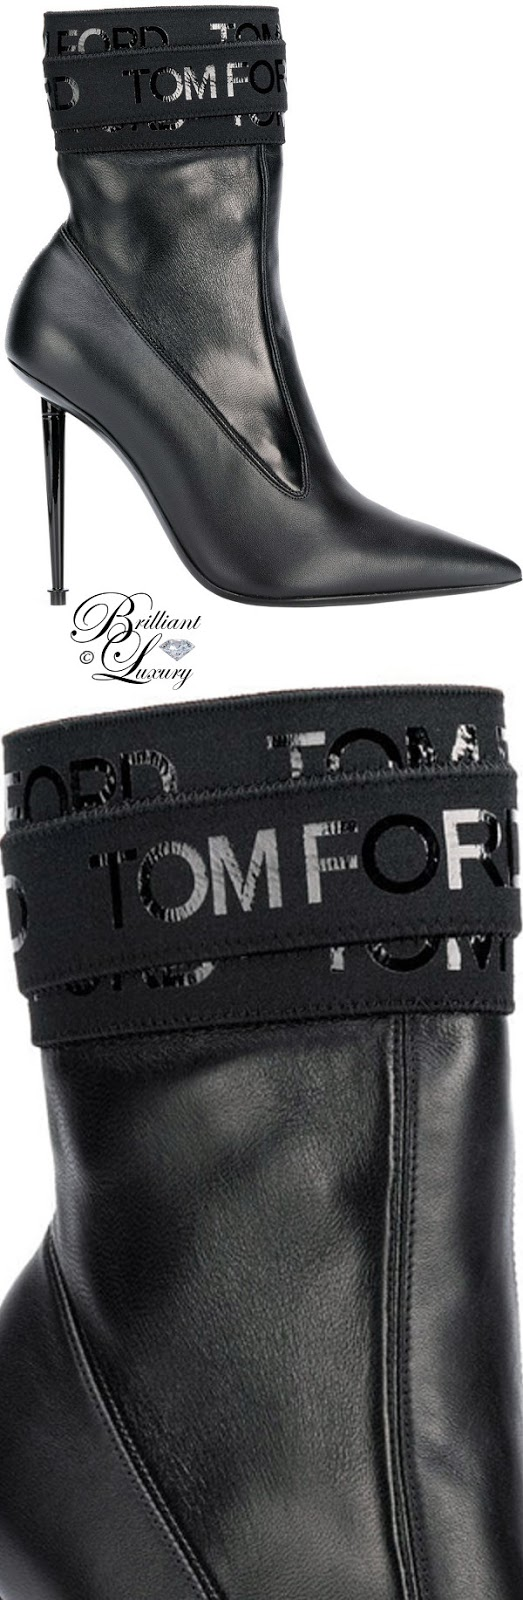 Brilliant Luxury ♦ Tom Ford Logo bandaged pointed ankle boots #black